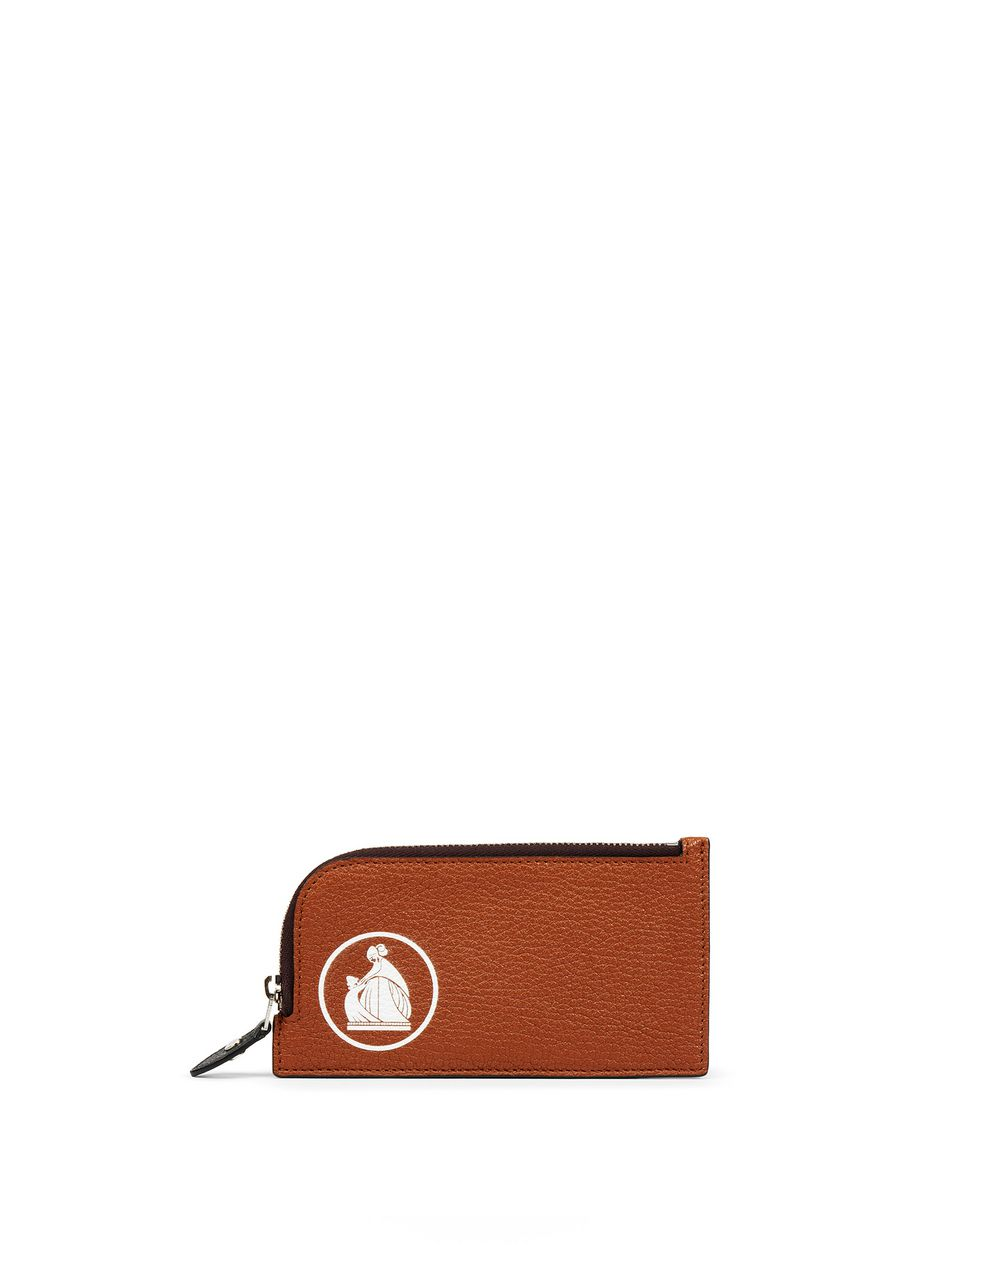 EARTH-COLORED ZIPPED CLUTCH - Lanvin